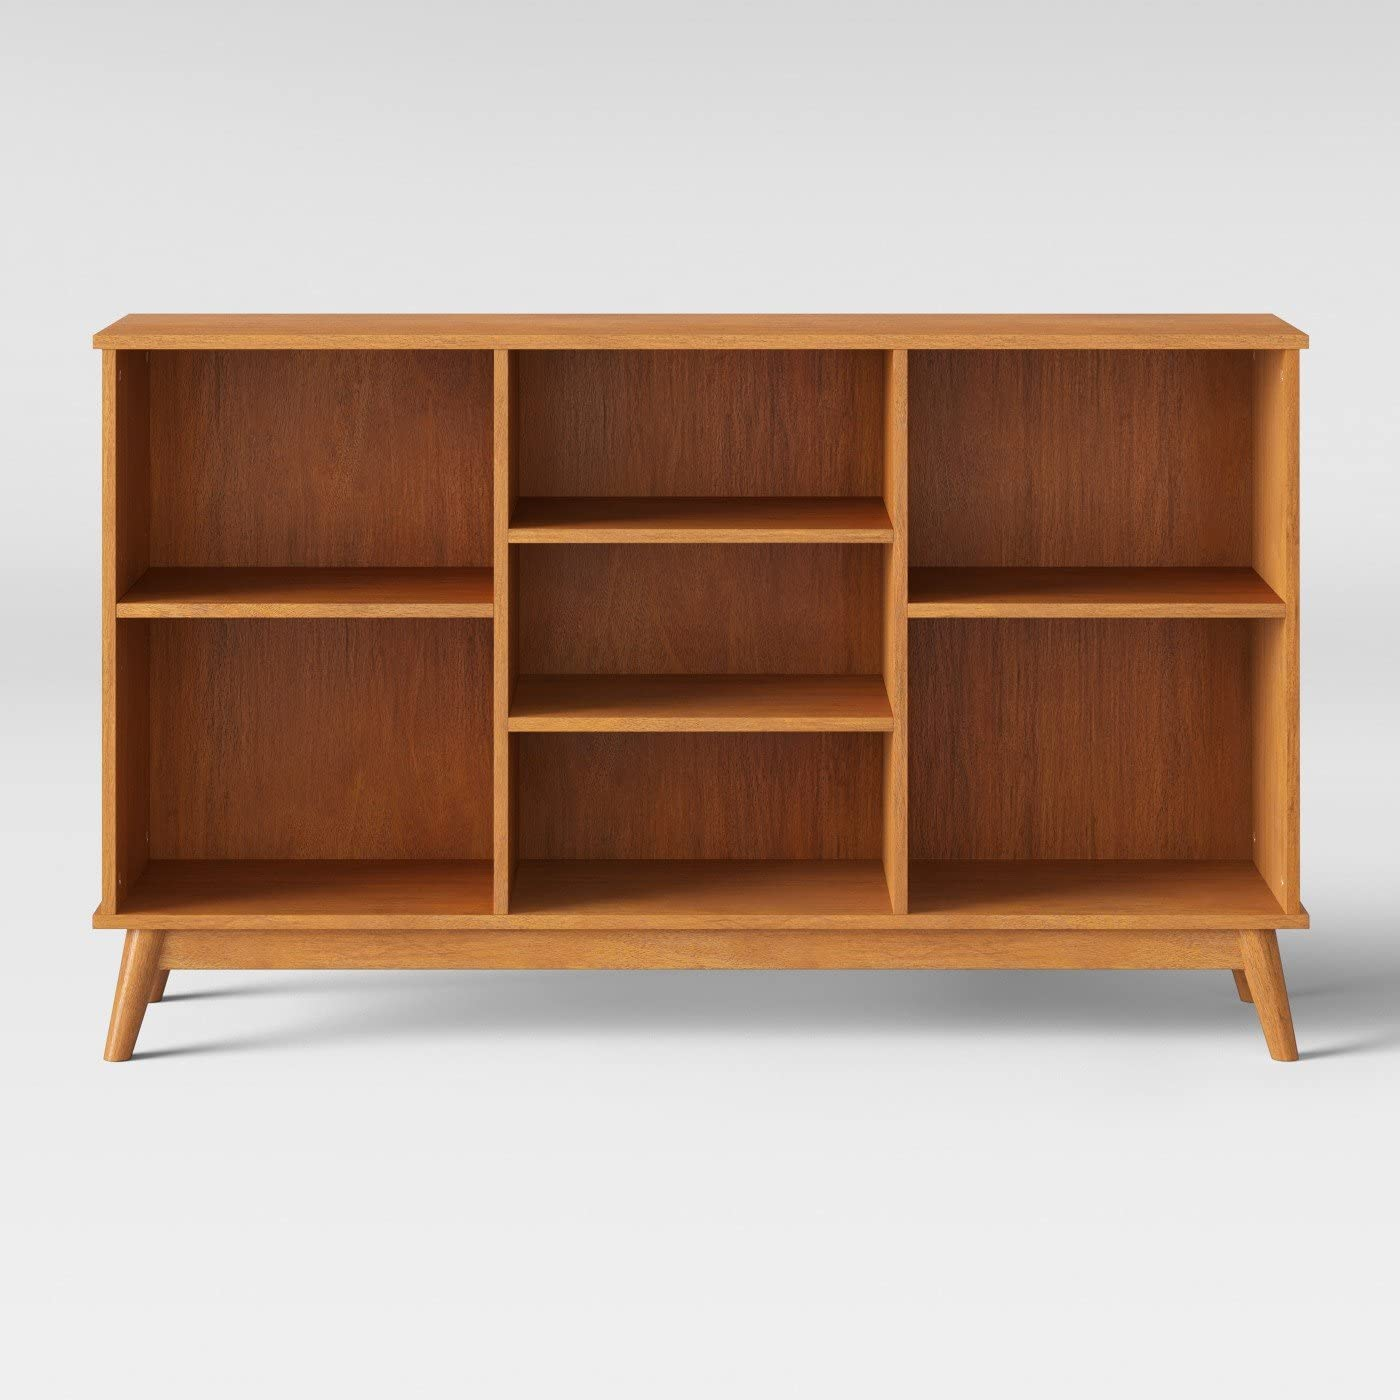 Deal of the week: Project 62 Amherst Mid Century Modern Horizontal Bookcase